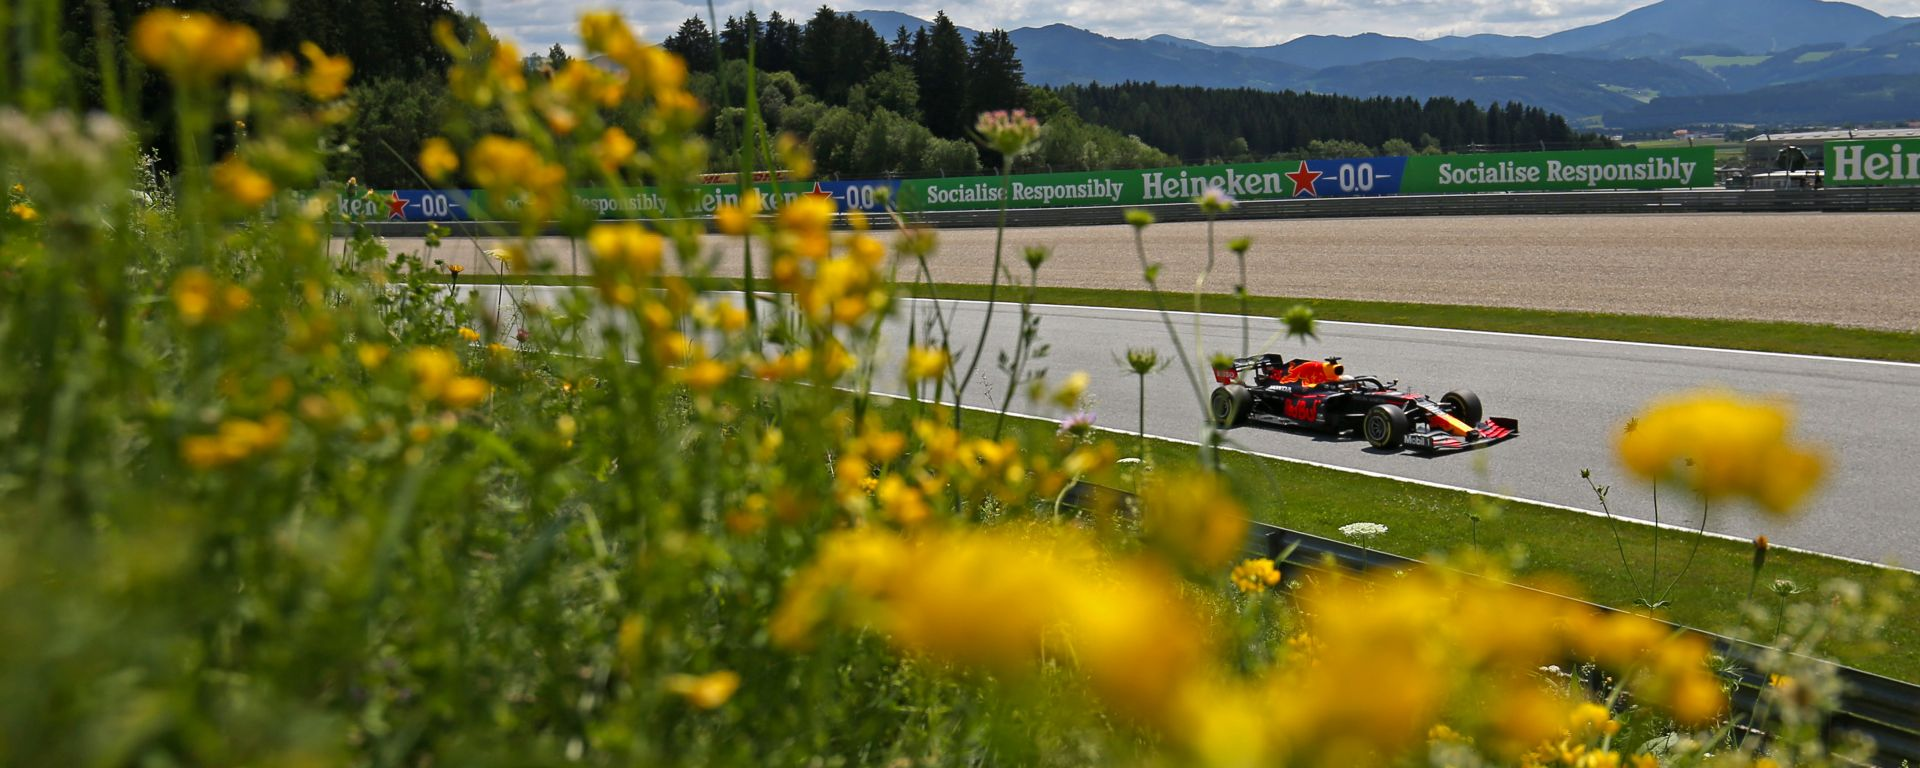 F1 GP Austria 2020, Red Bull Ring: Max Verstappen (Red Bull)